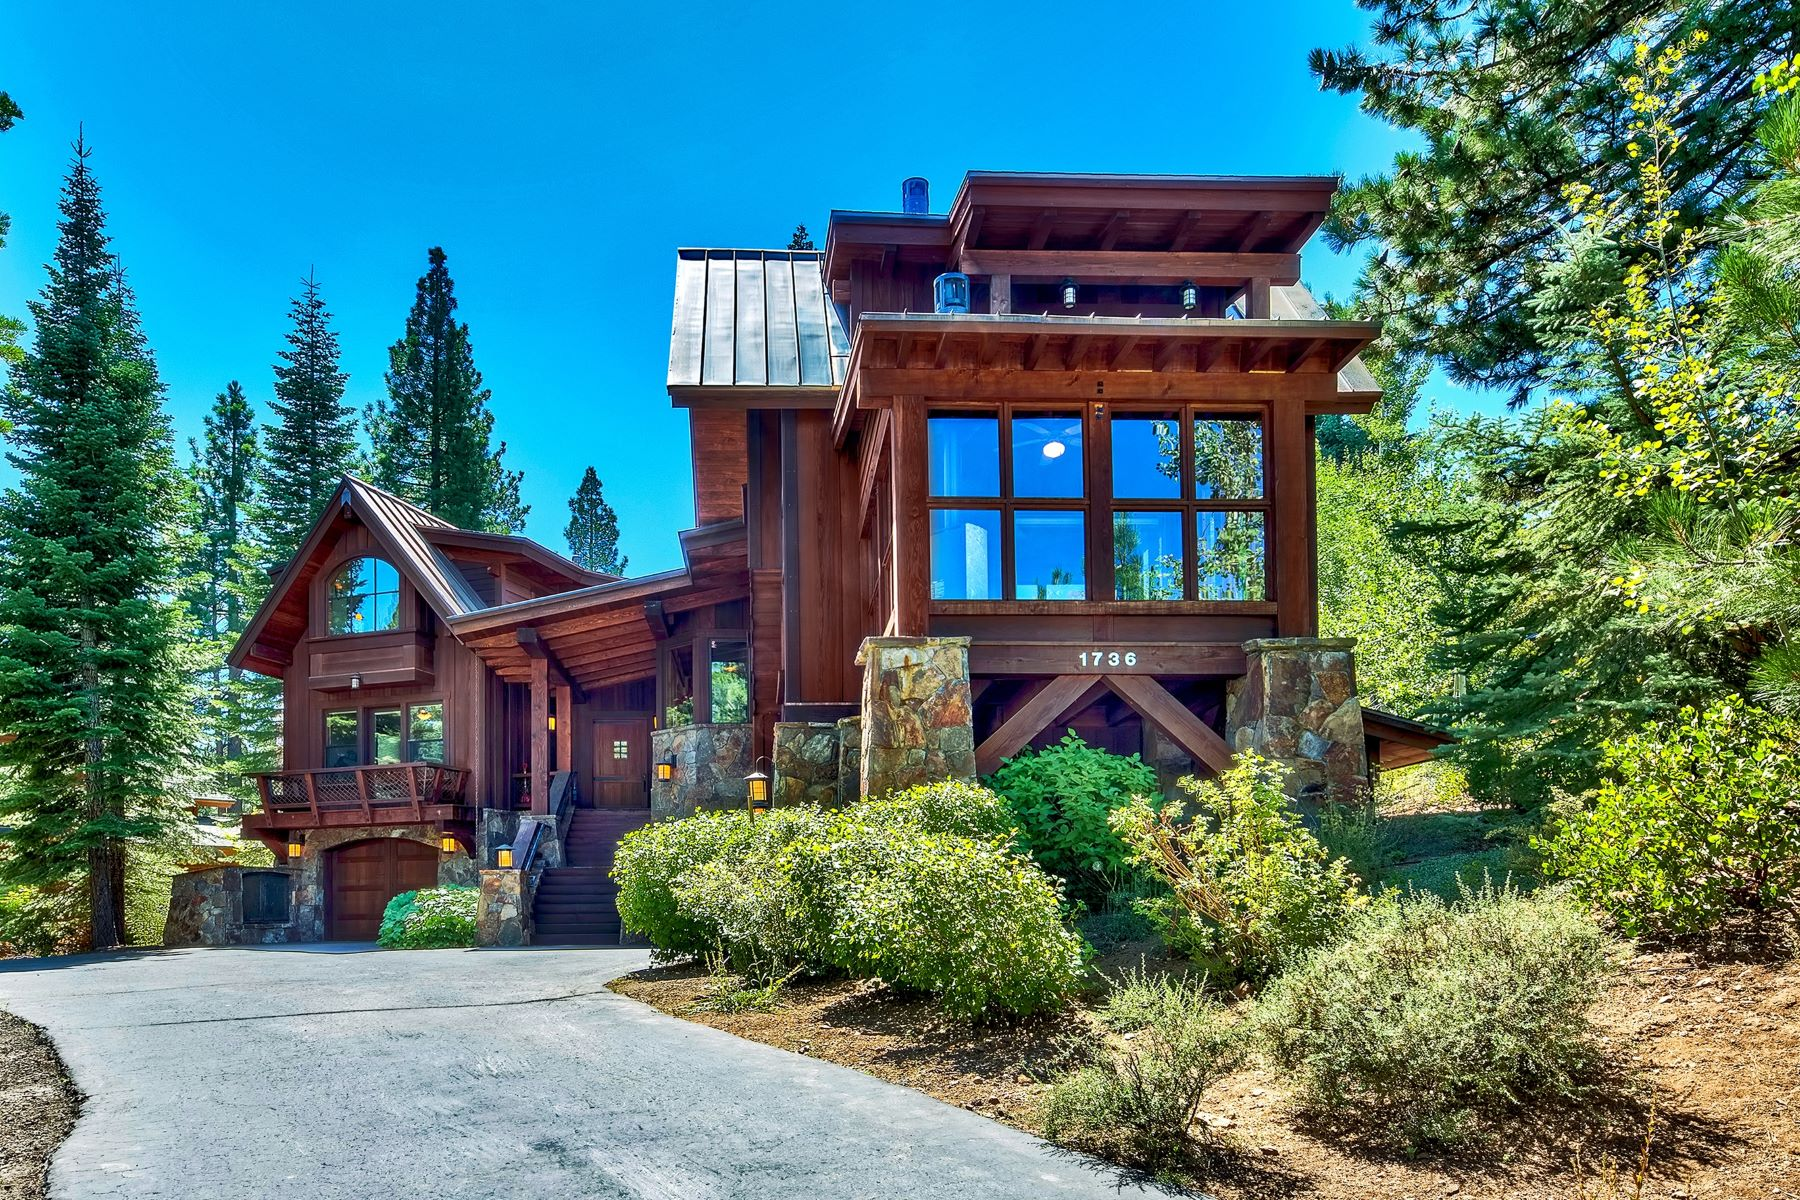 Property 为 销售 在 1736 Grouse Ridge Road, Truckee 1736 Grouse Ridge Road 特拉基, 加利福尼亚州 96161 美国